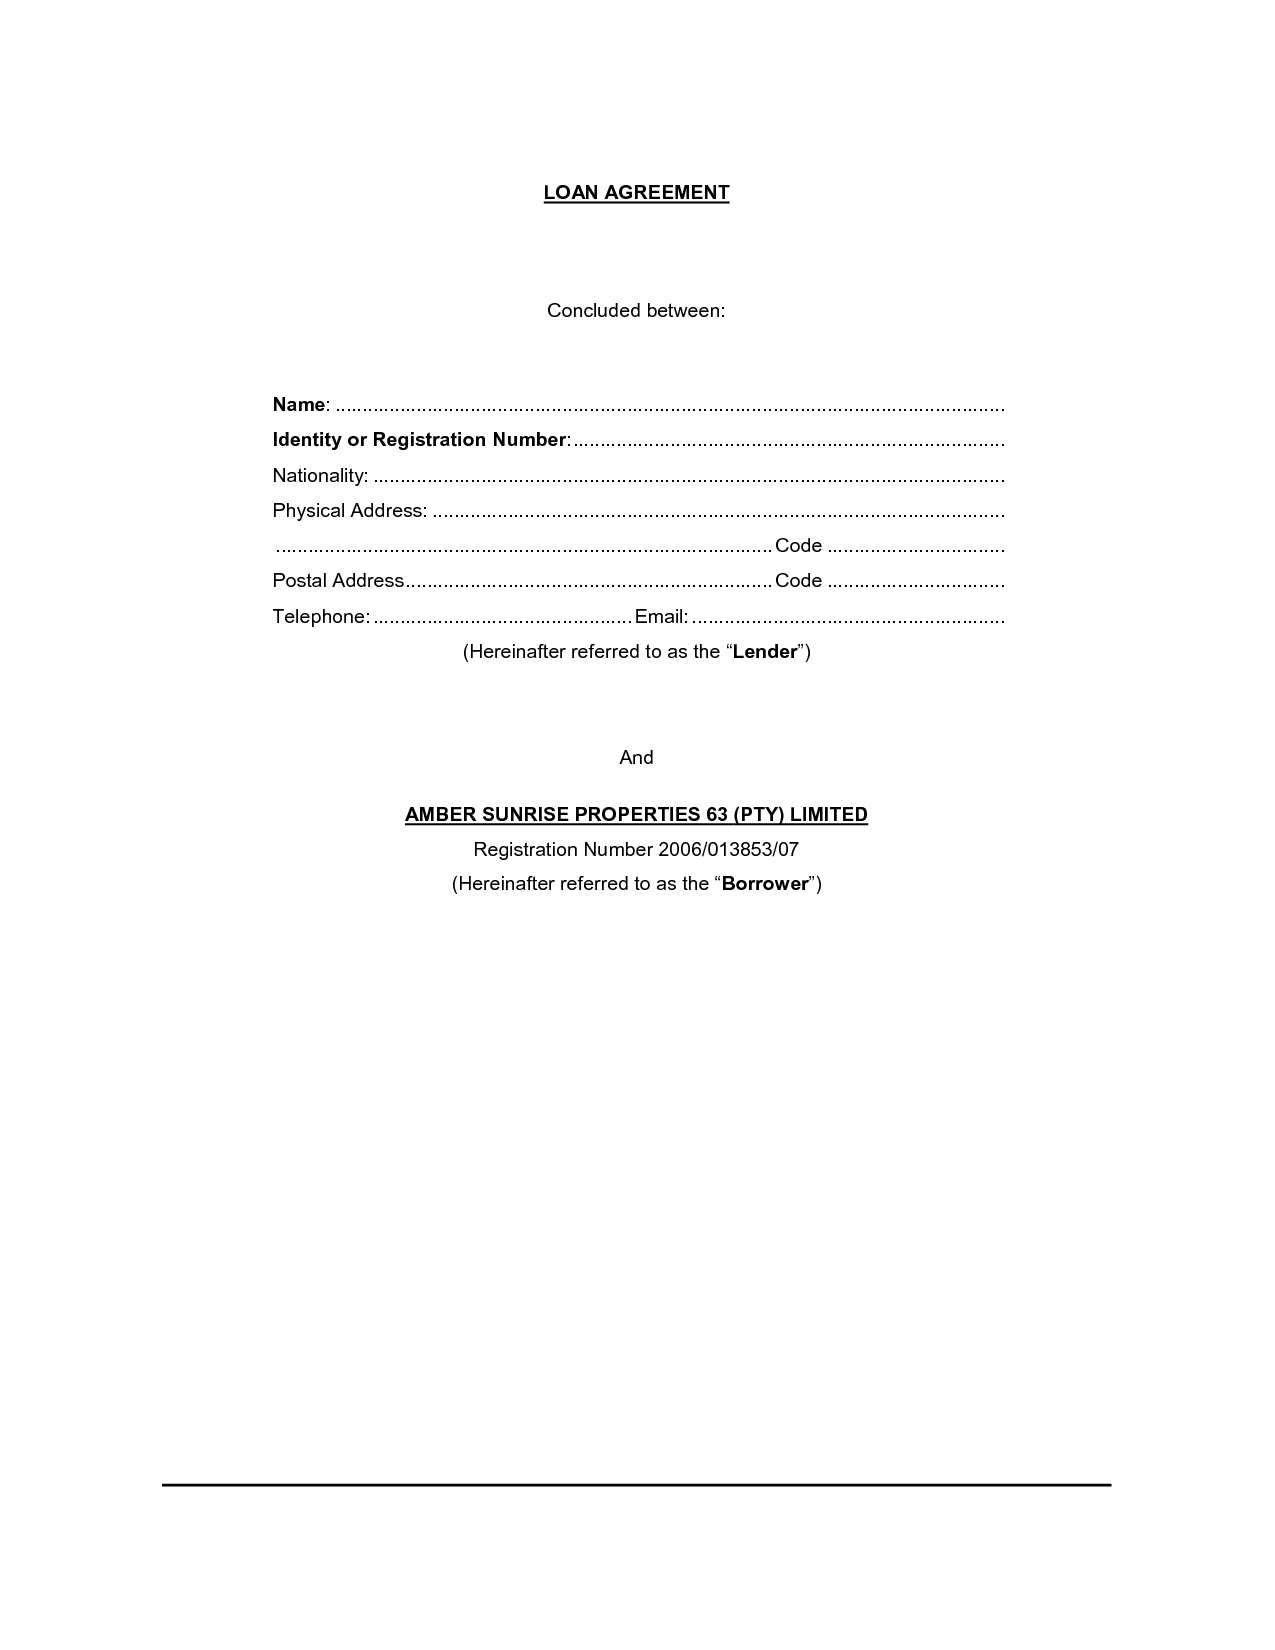 loanagreementtemplatefree simple loan contract – Simple Loan Form